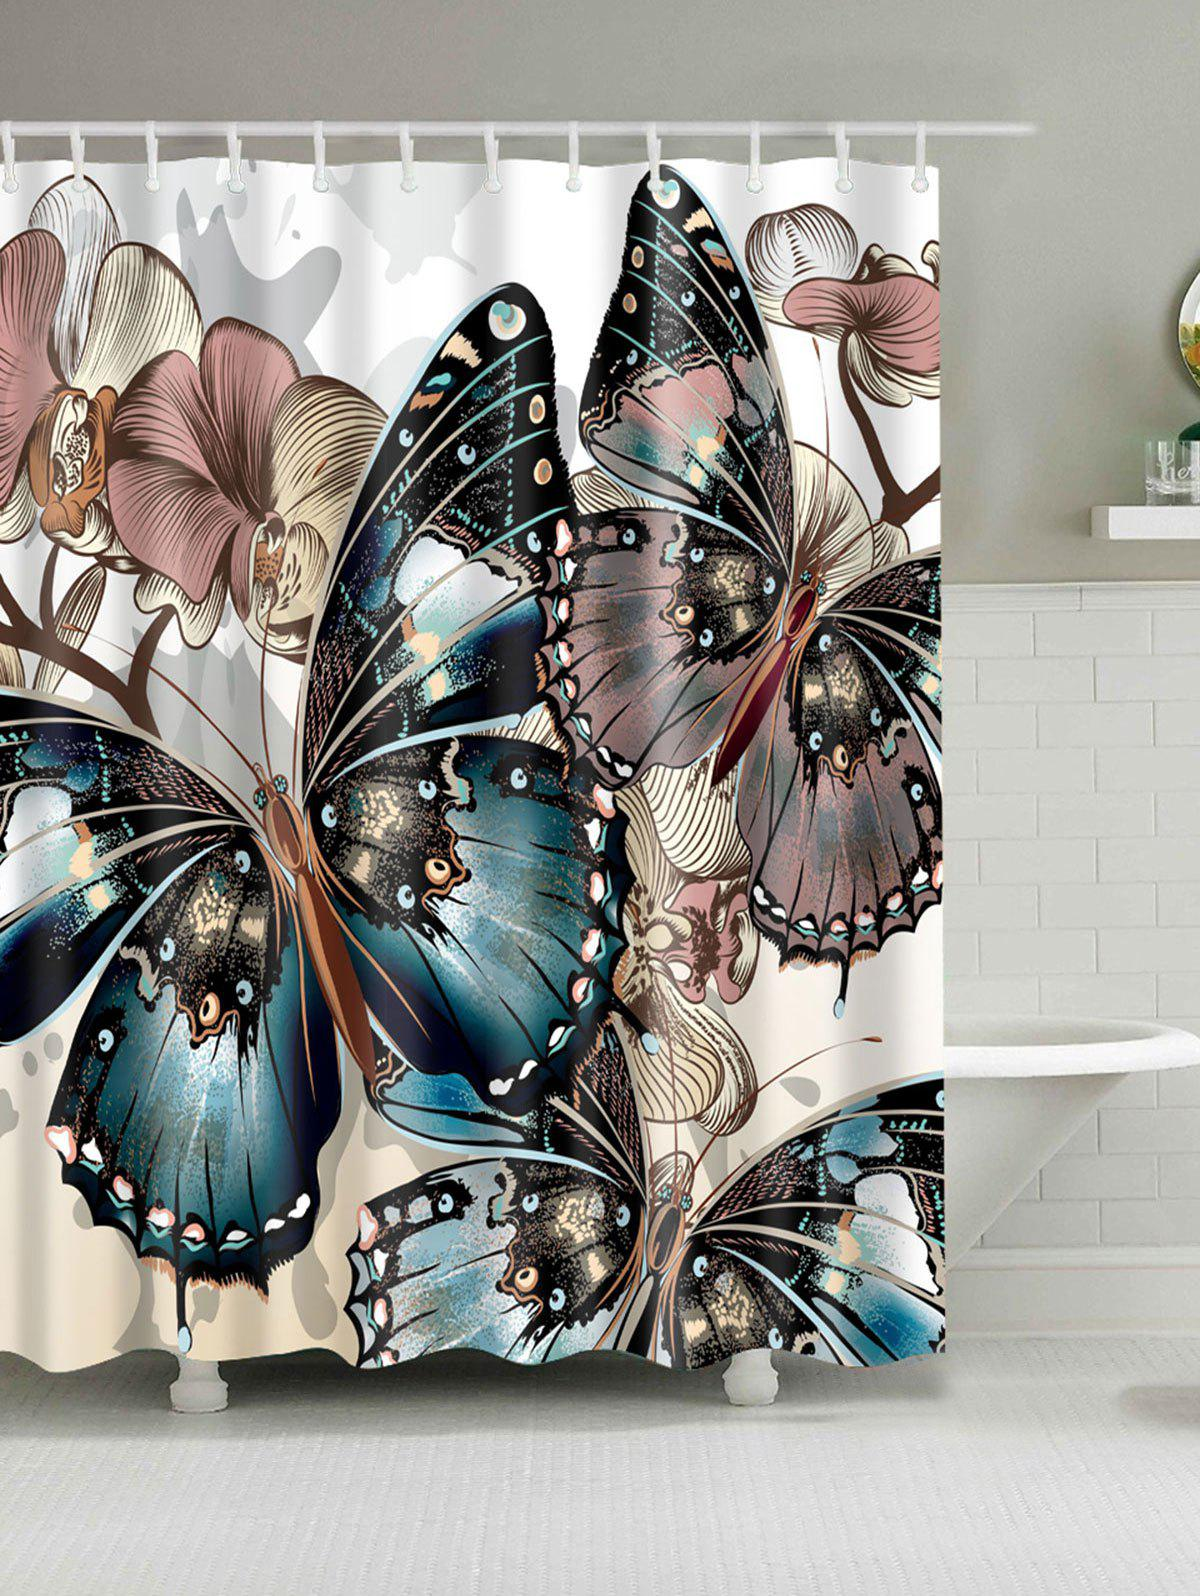 Butterfly Print Water Repellent Shower CurtainHOME<br><br>Size: W71 INCH * L71 INCH; Color: COLORMIX; Products Type: Shower Curtains; Materials: Polyester; Pattern: Insect; Style: Fashion; Number of Hook Holes: W59 inch*L71 inch: 10; W71 inch*L71 inch: 12; W71 inch*L79 inch: 12; Package Contents: 1 x Shower Curtain 1 x Hooks?Set?;